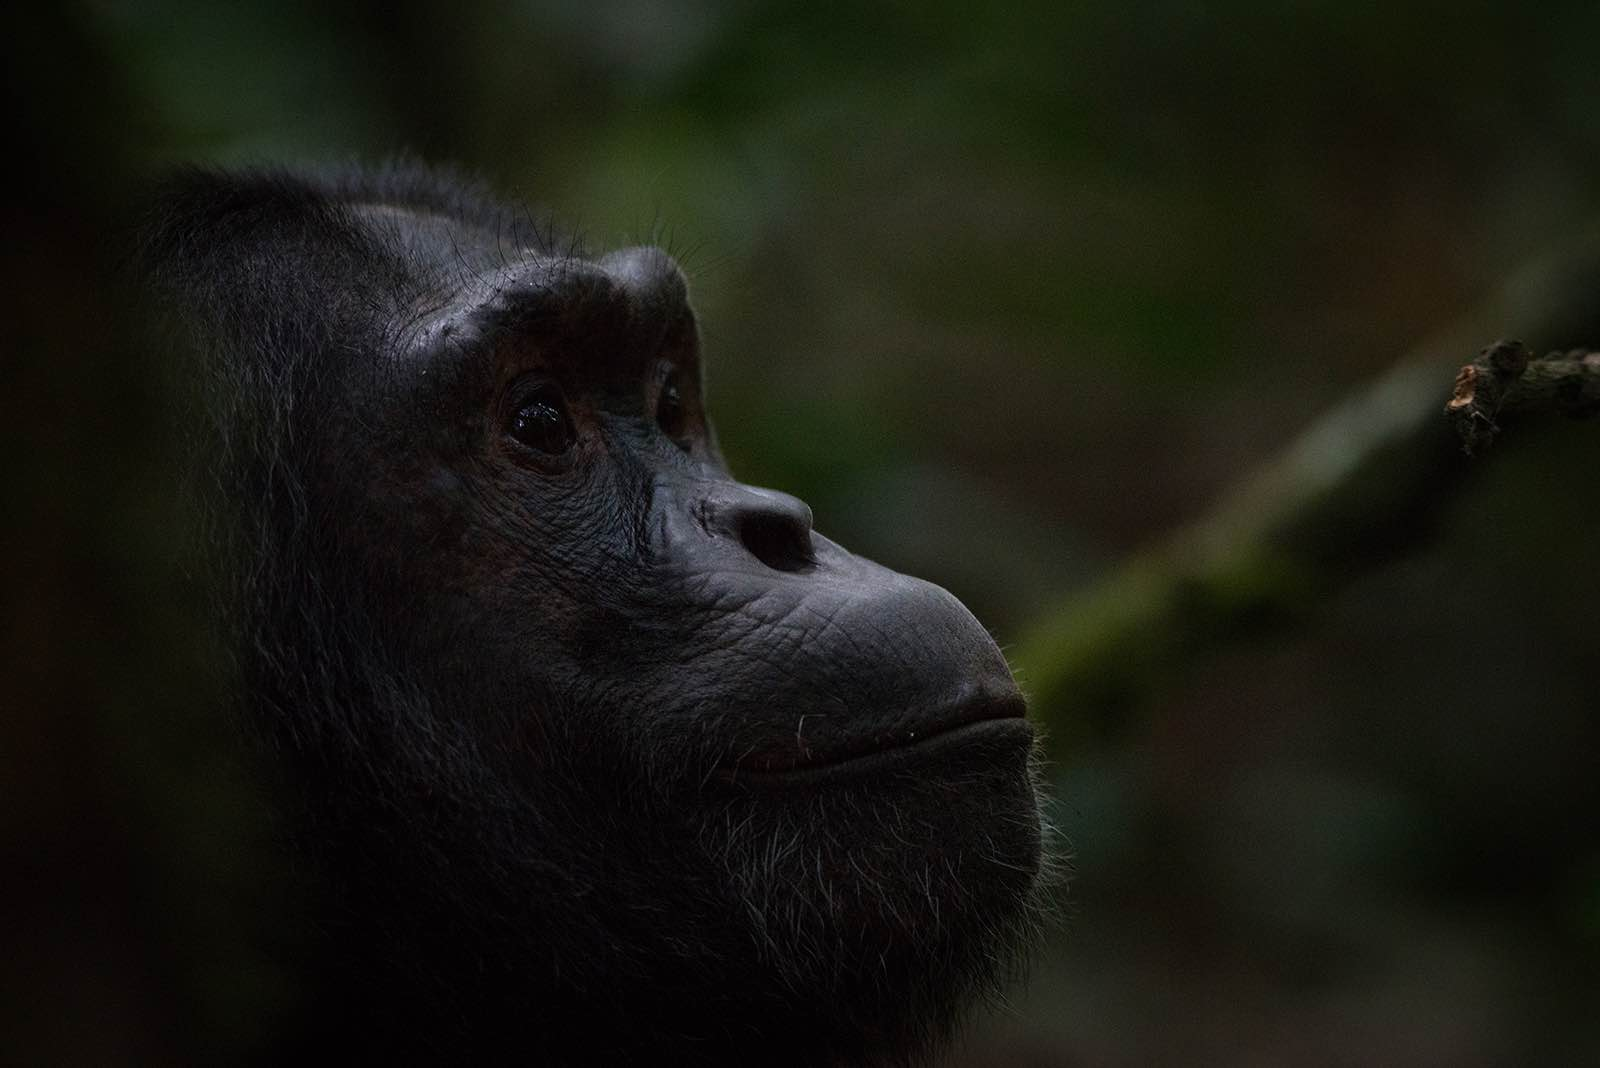 Profile of a chimpanzee in the green forest